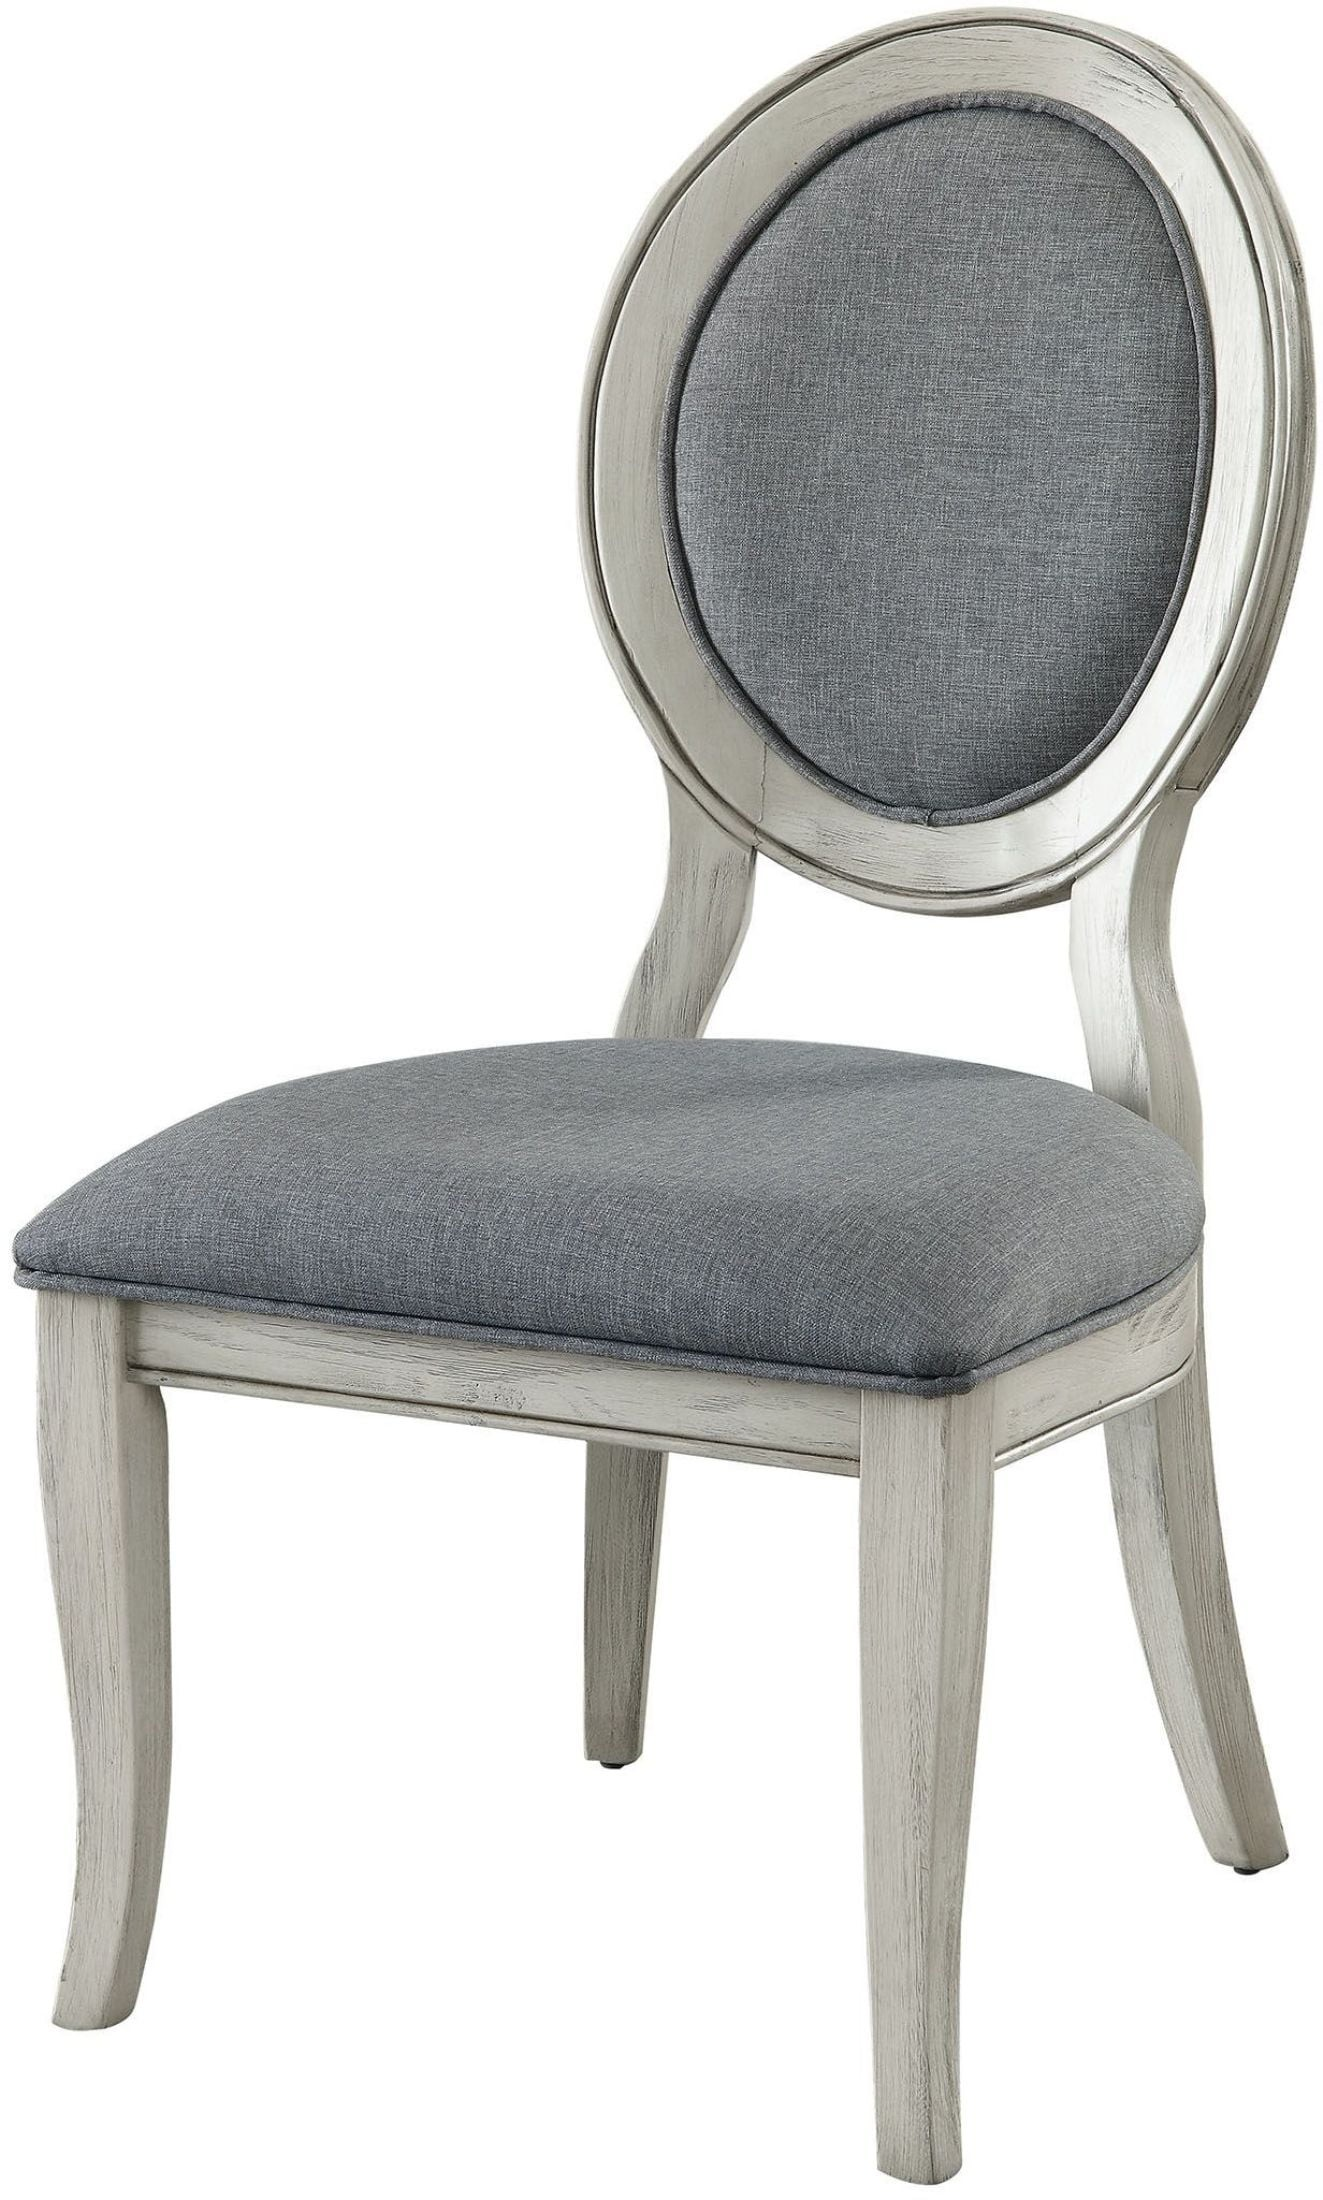 White Dining Room Chair Kathryn Antique White Dining Room Set